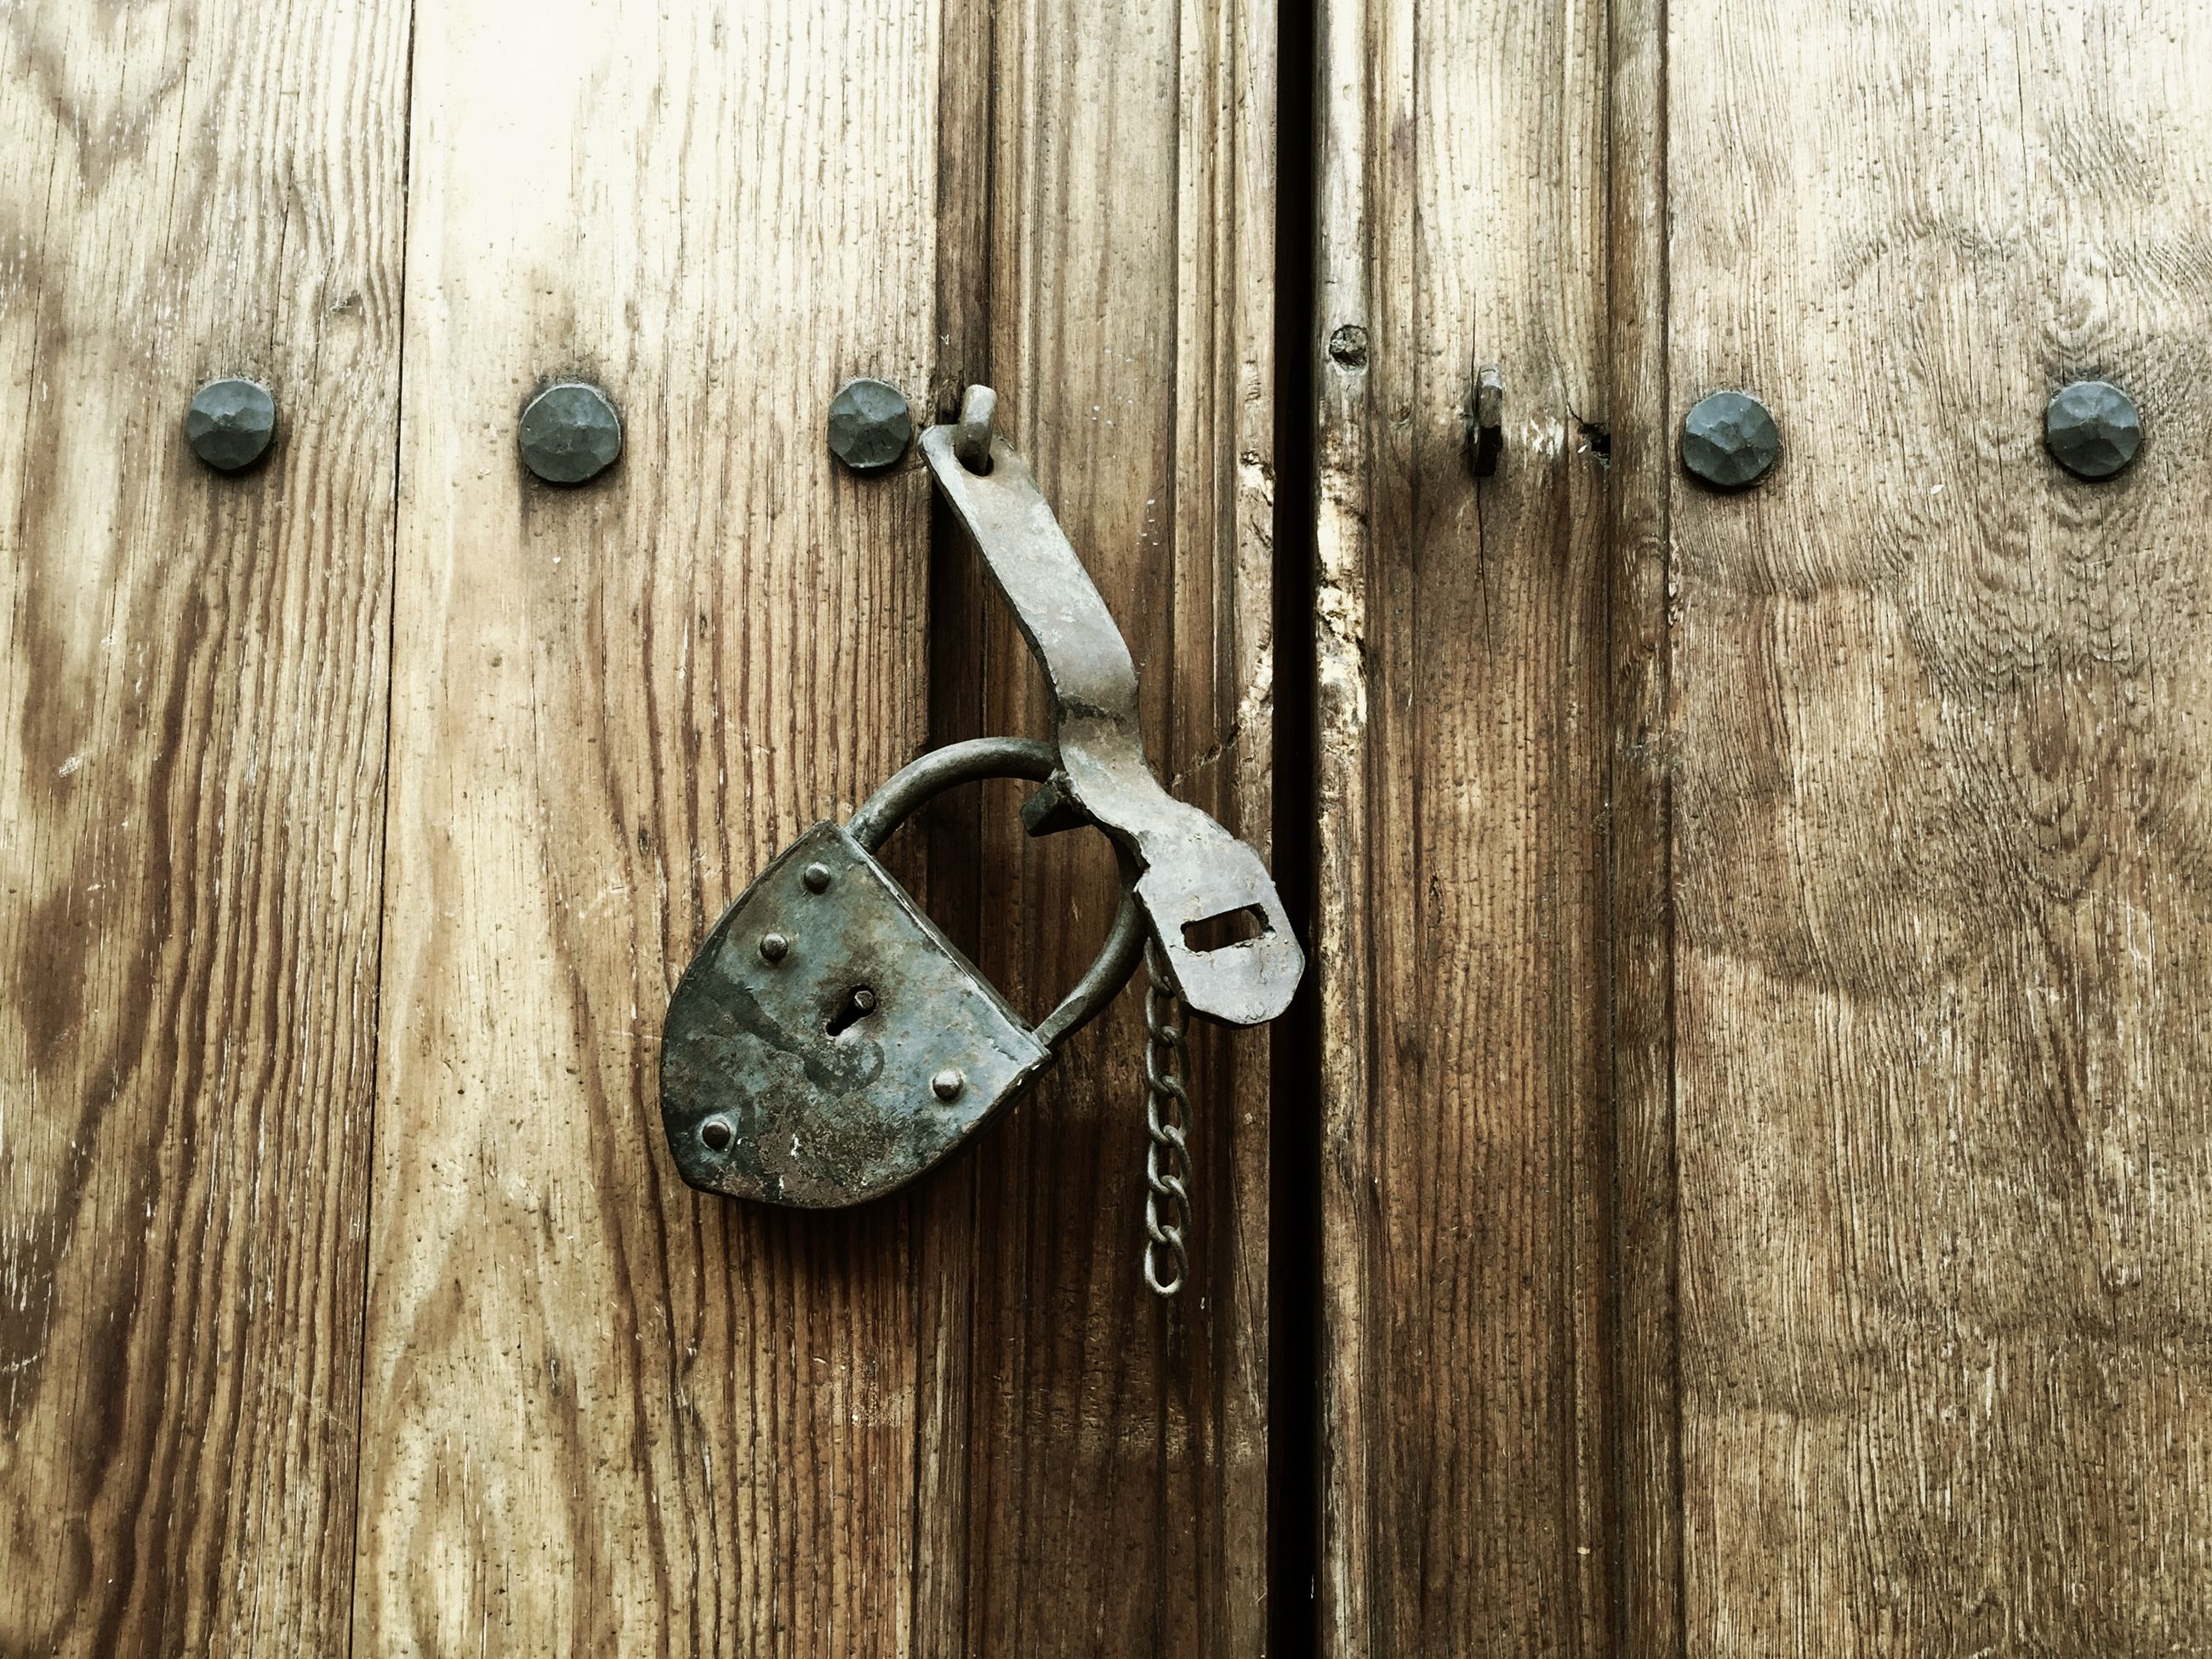 wood - material, wooden, close-up, metal, wood, door, old, protection, safety, textured, plank, rusty, full frame, security, handle, metallic, part of, lock, day, backgrounds